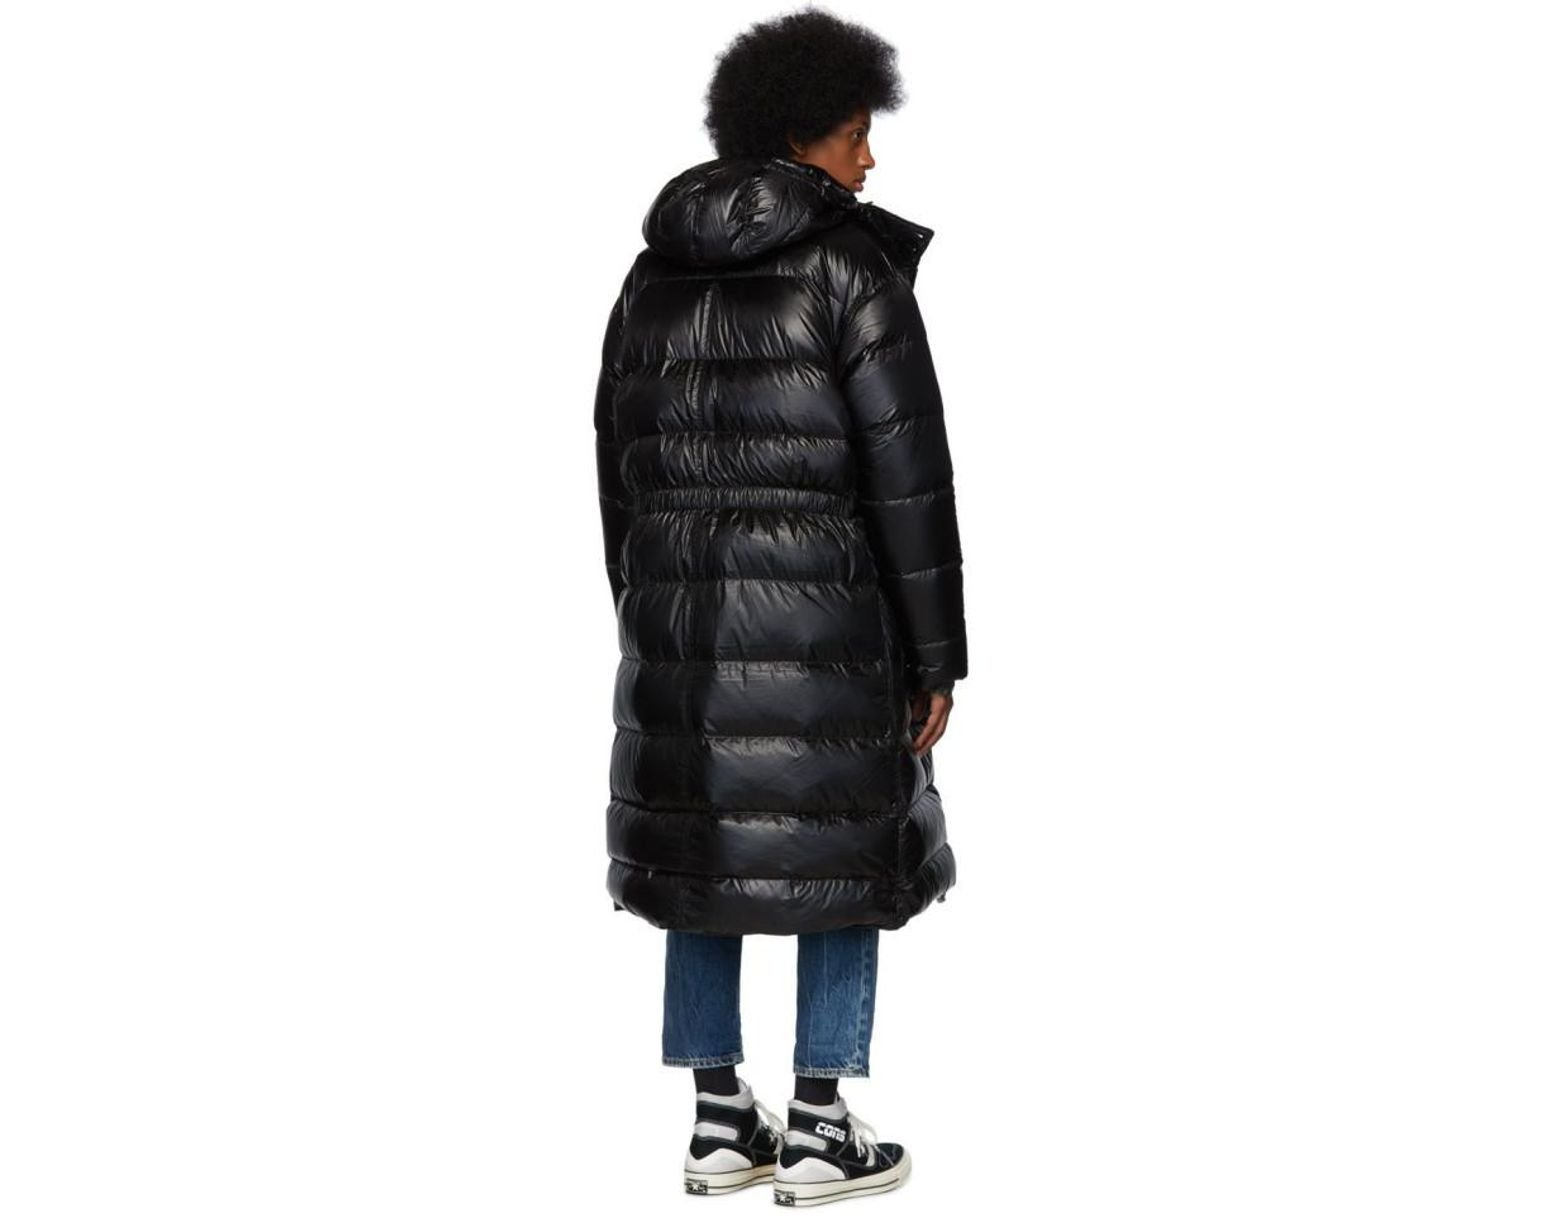 762abdbf3 Men's Black Brumal Edition Down Long Anorak Puffer Coat